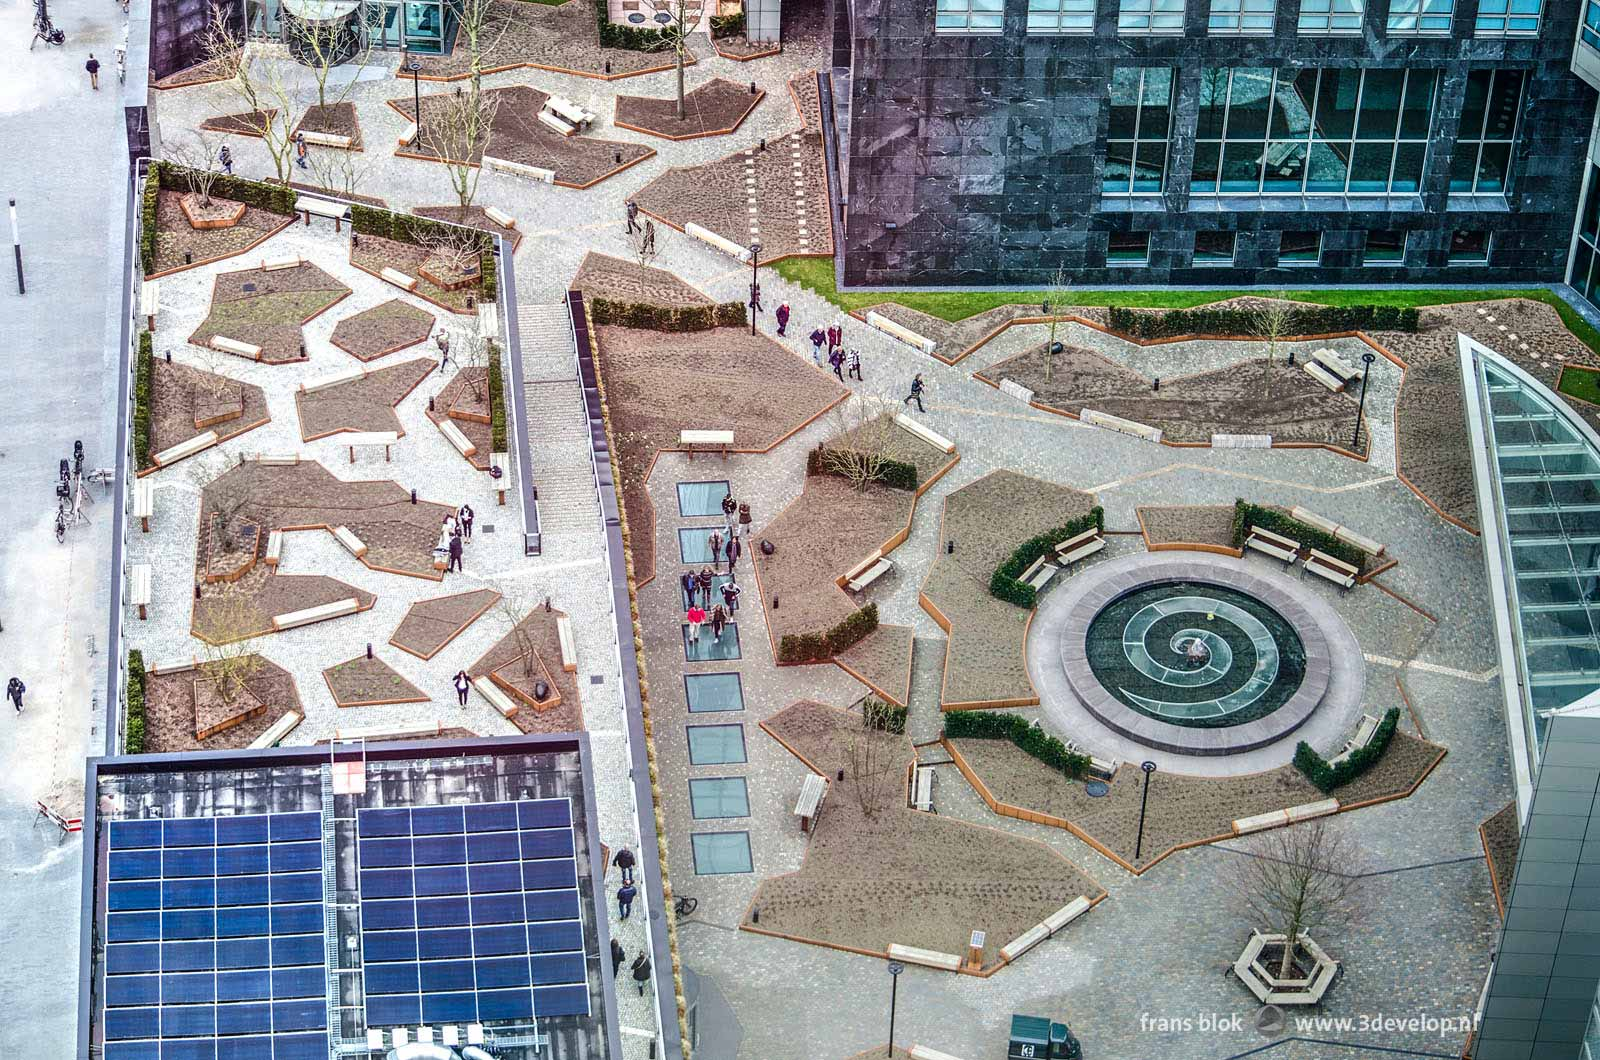 Top view of the public space around the ABN Amro building in the Zuidas district in Amsterdam